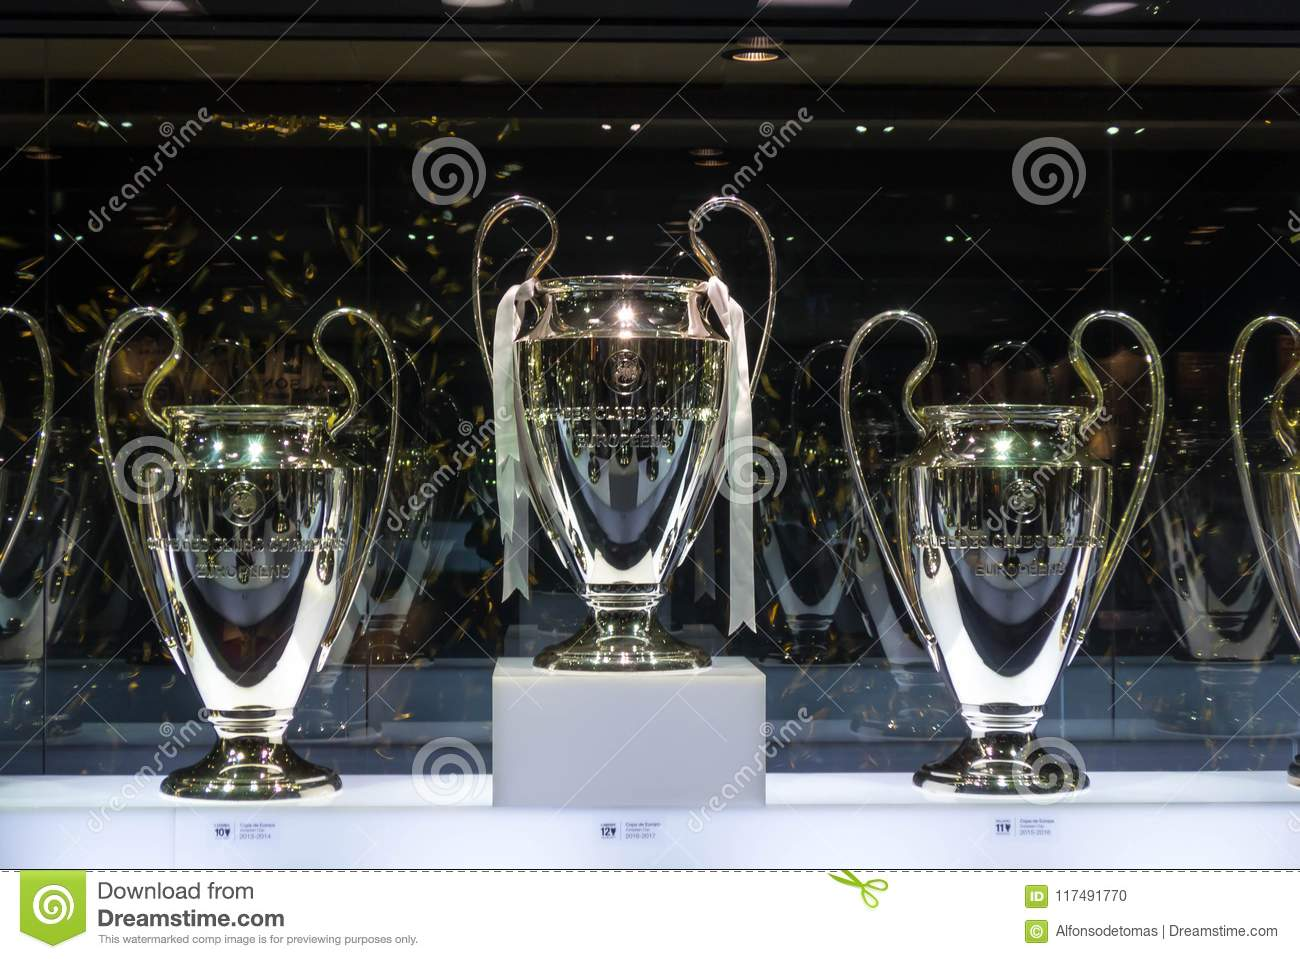 Real Madrid UEFA champions League cups trophies